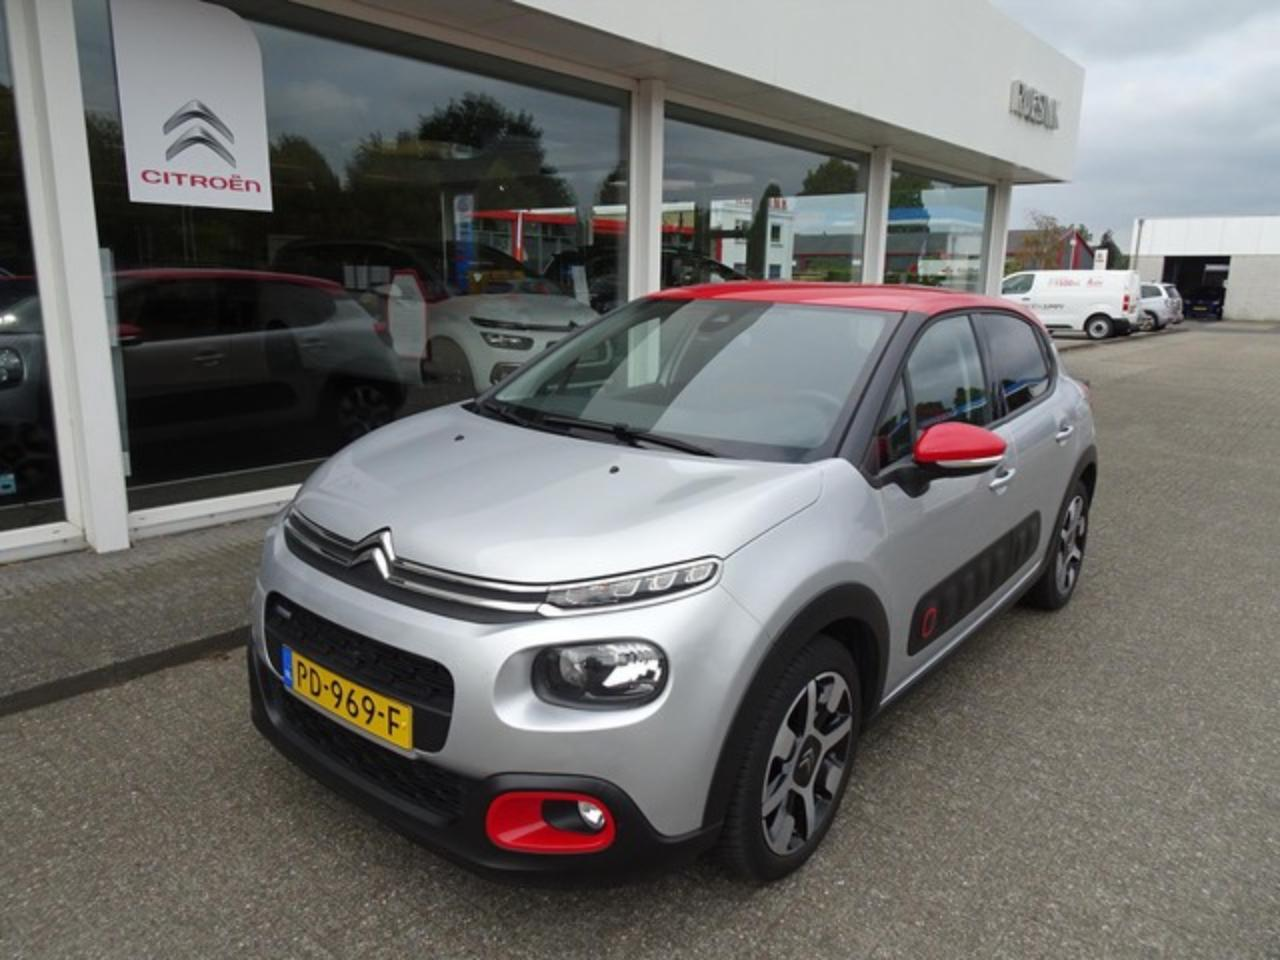 Citroën C3 1.2 82PK SHINE PACK SMILE/ALL SEASONS RIJKLAAR!